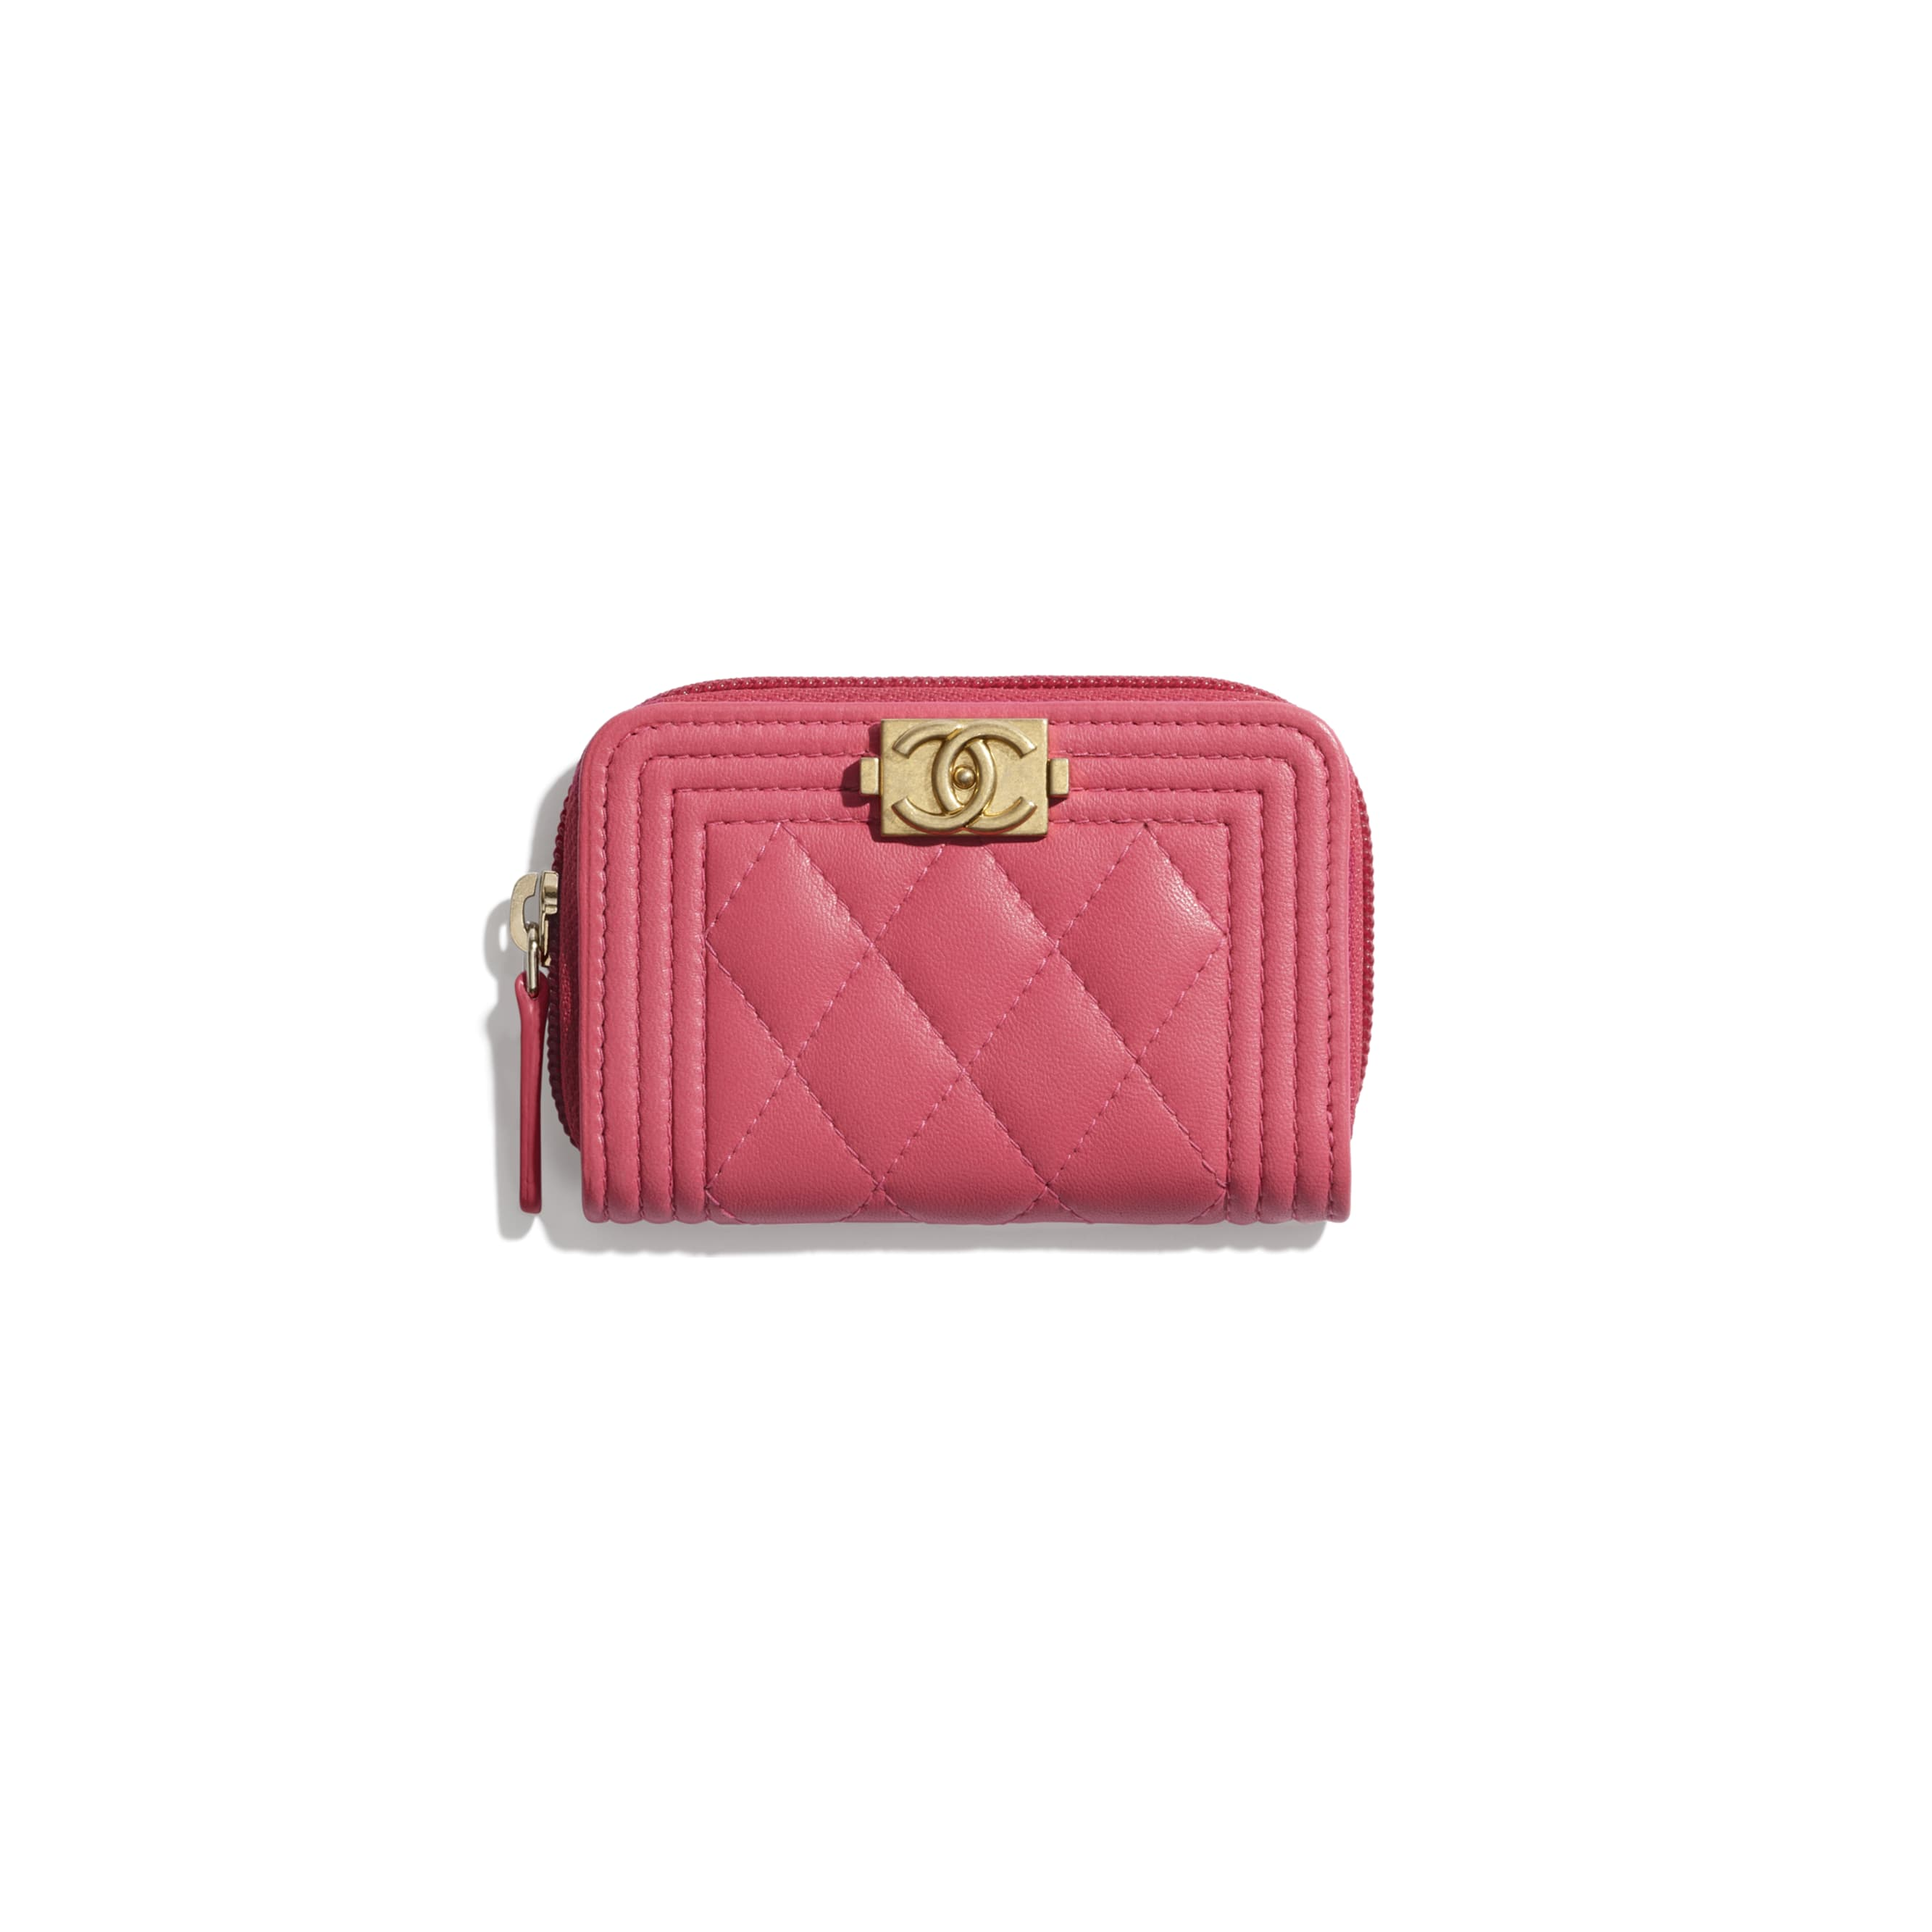 BOY CHANEL Zipped Coin Purse - Pink - Lambskin - CHANEL - Default view - see standard sized version